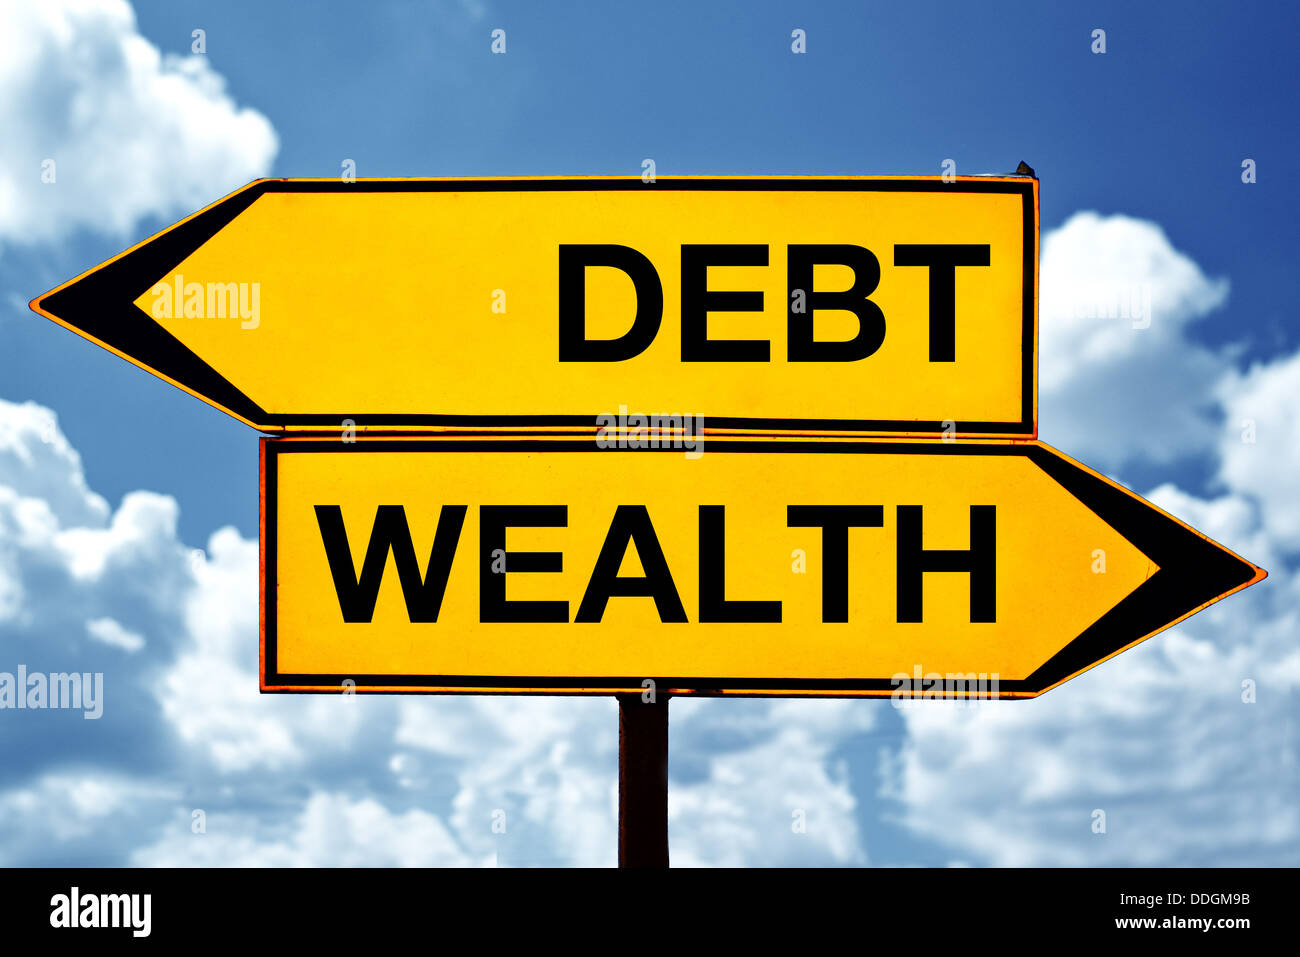 Debt or wealth, opposite signs. Two opposite signs against blue sky background. - Stock Image